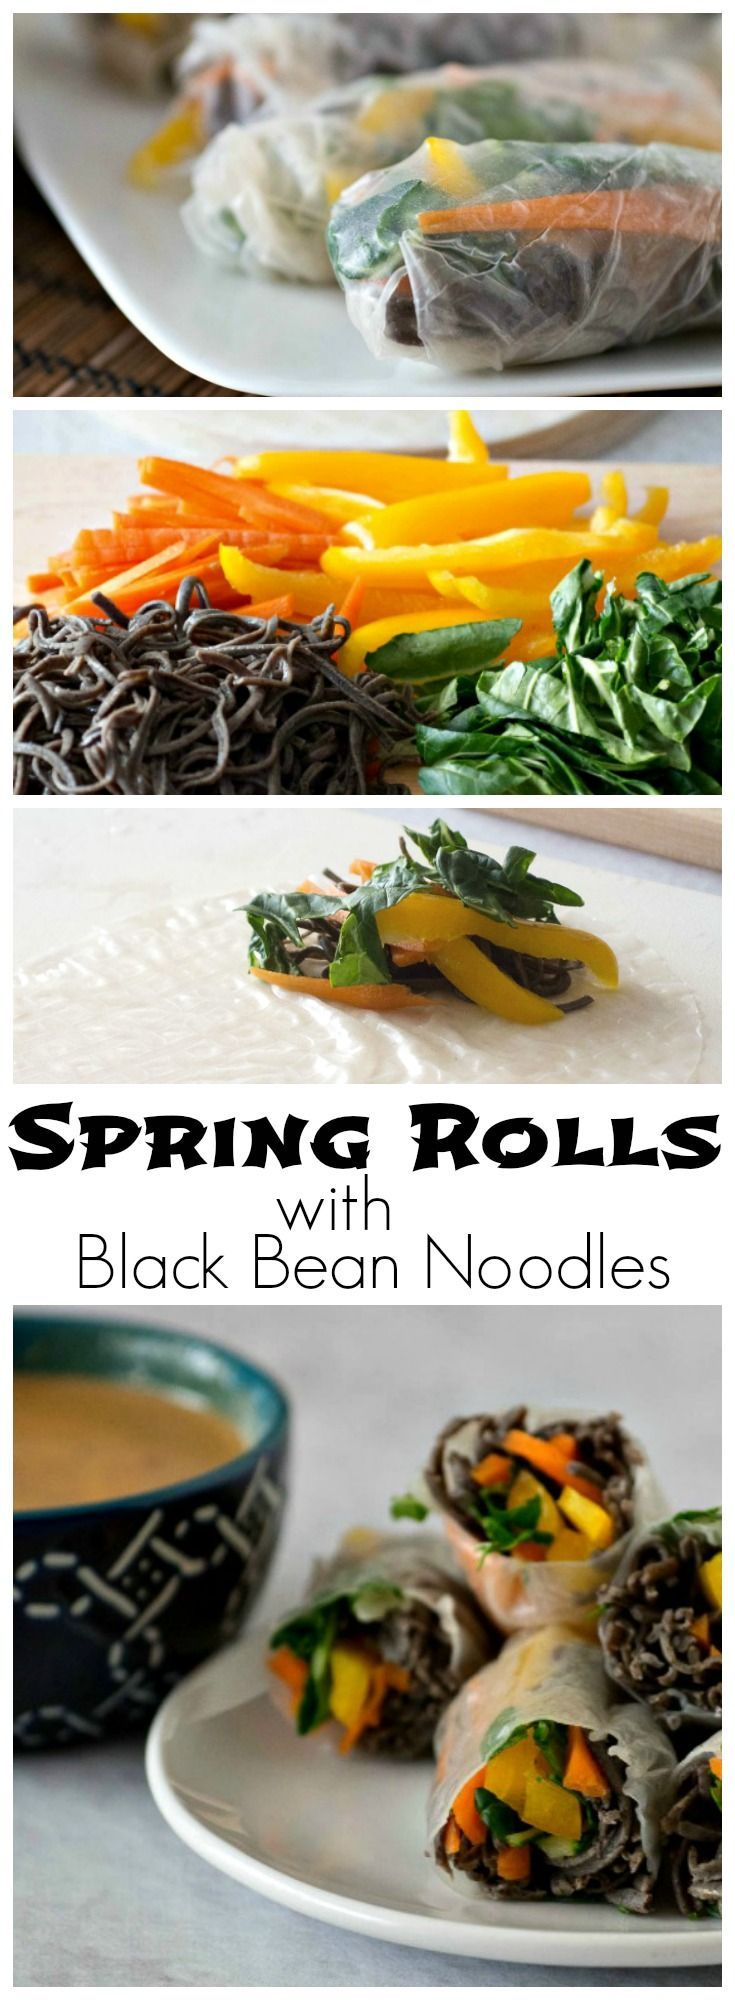 These easy to make Spring Rolls use Black Bean Spaghetti and lots of fresh veggies, like carrots, bok choi and yellow peppers, served with peanut dipping sauce.